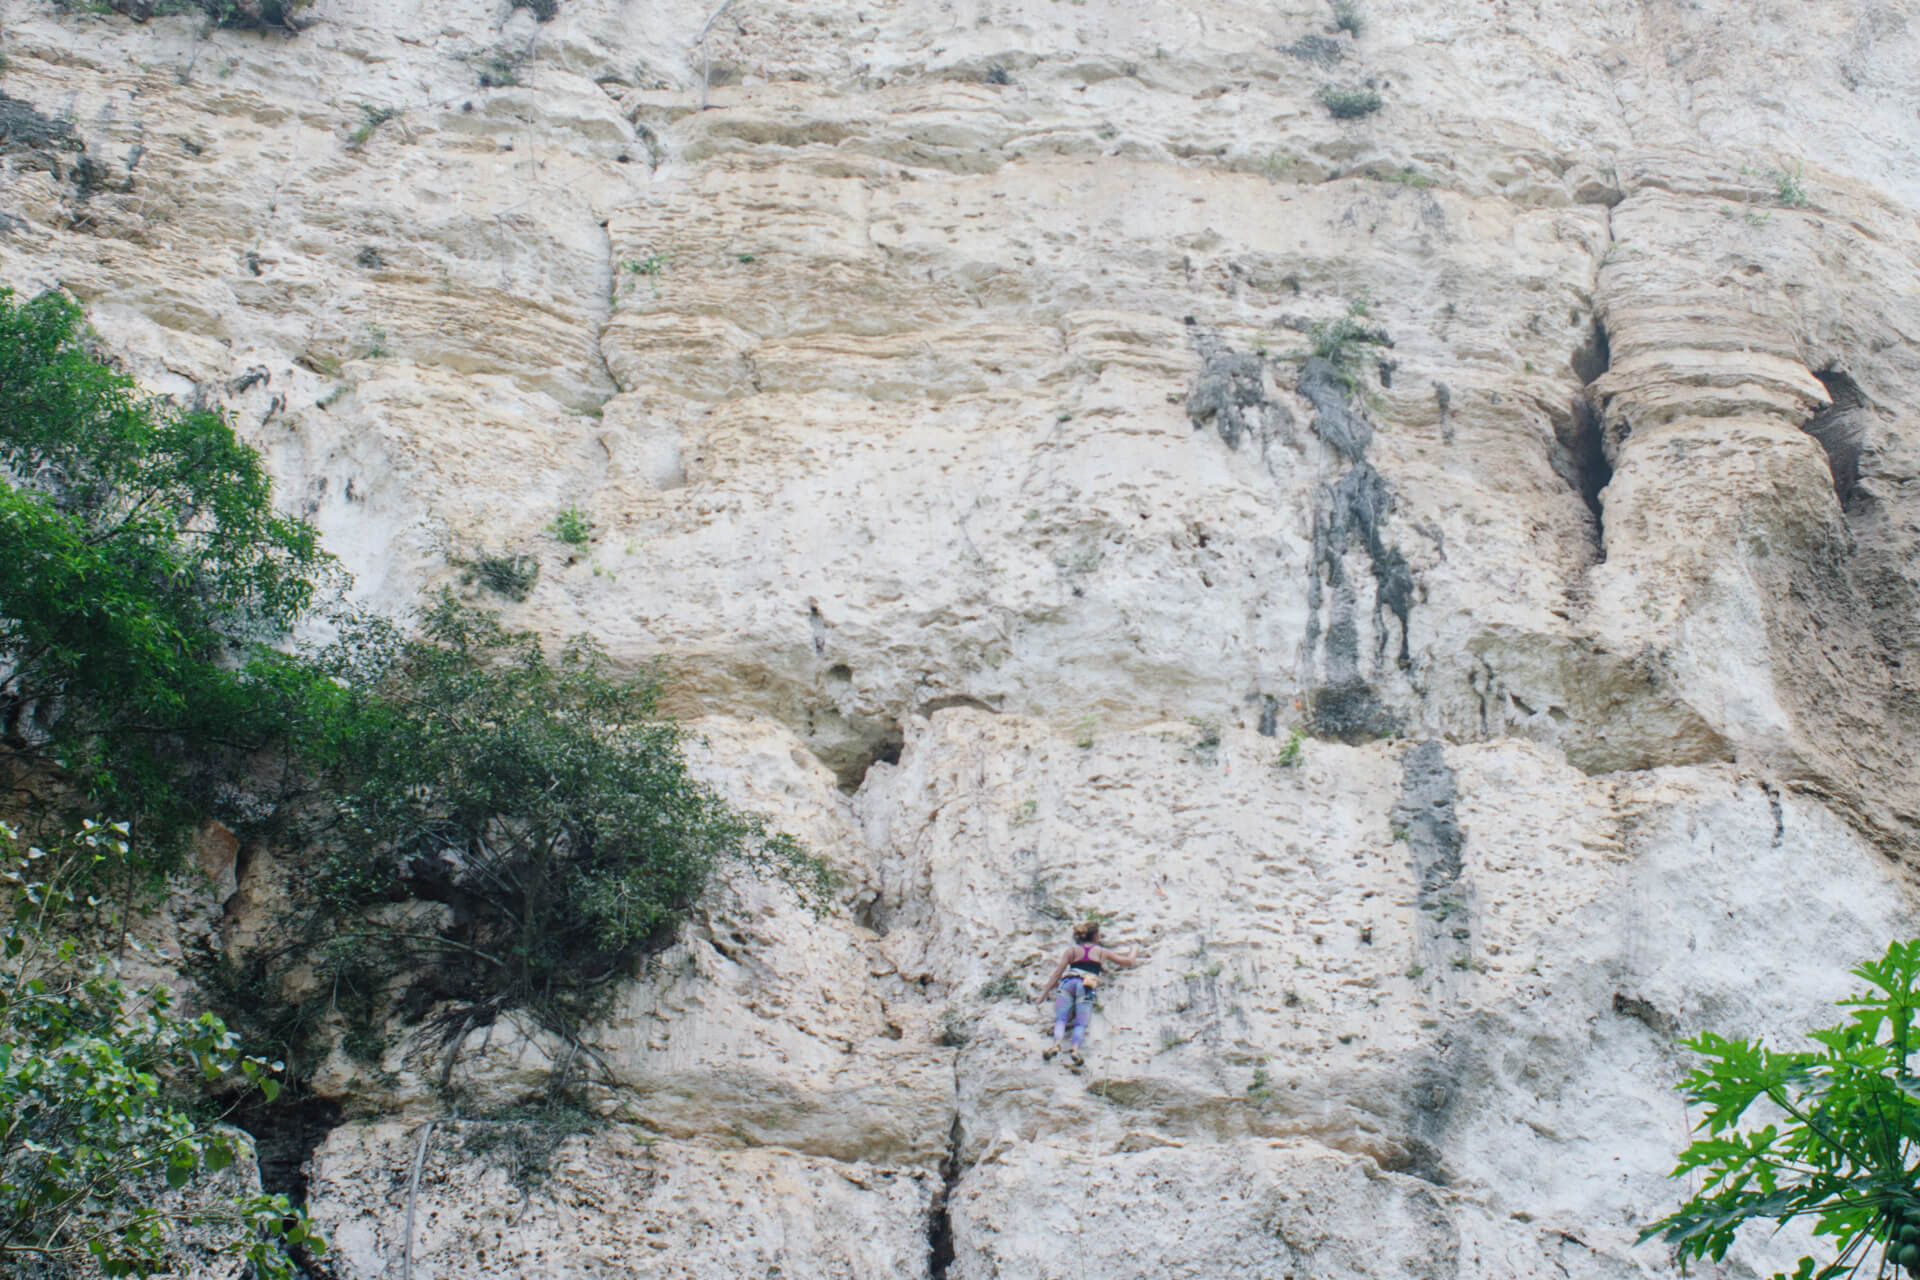 A female climber scales a rock formation